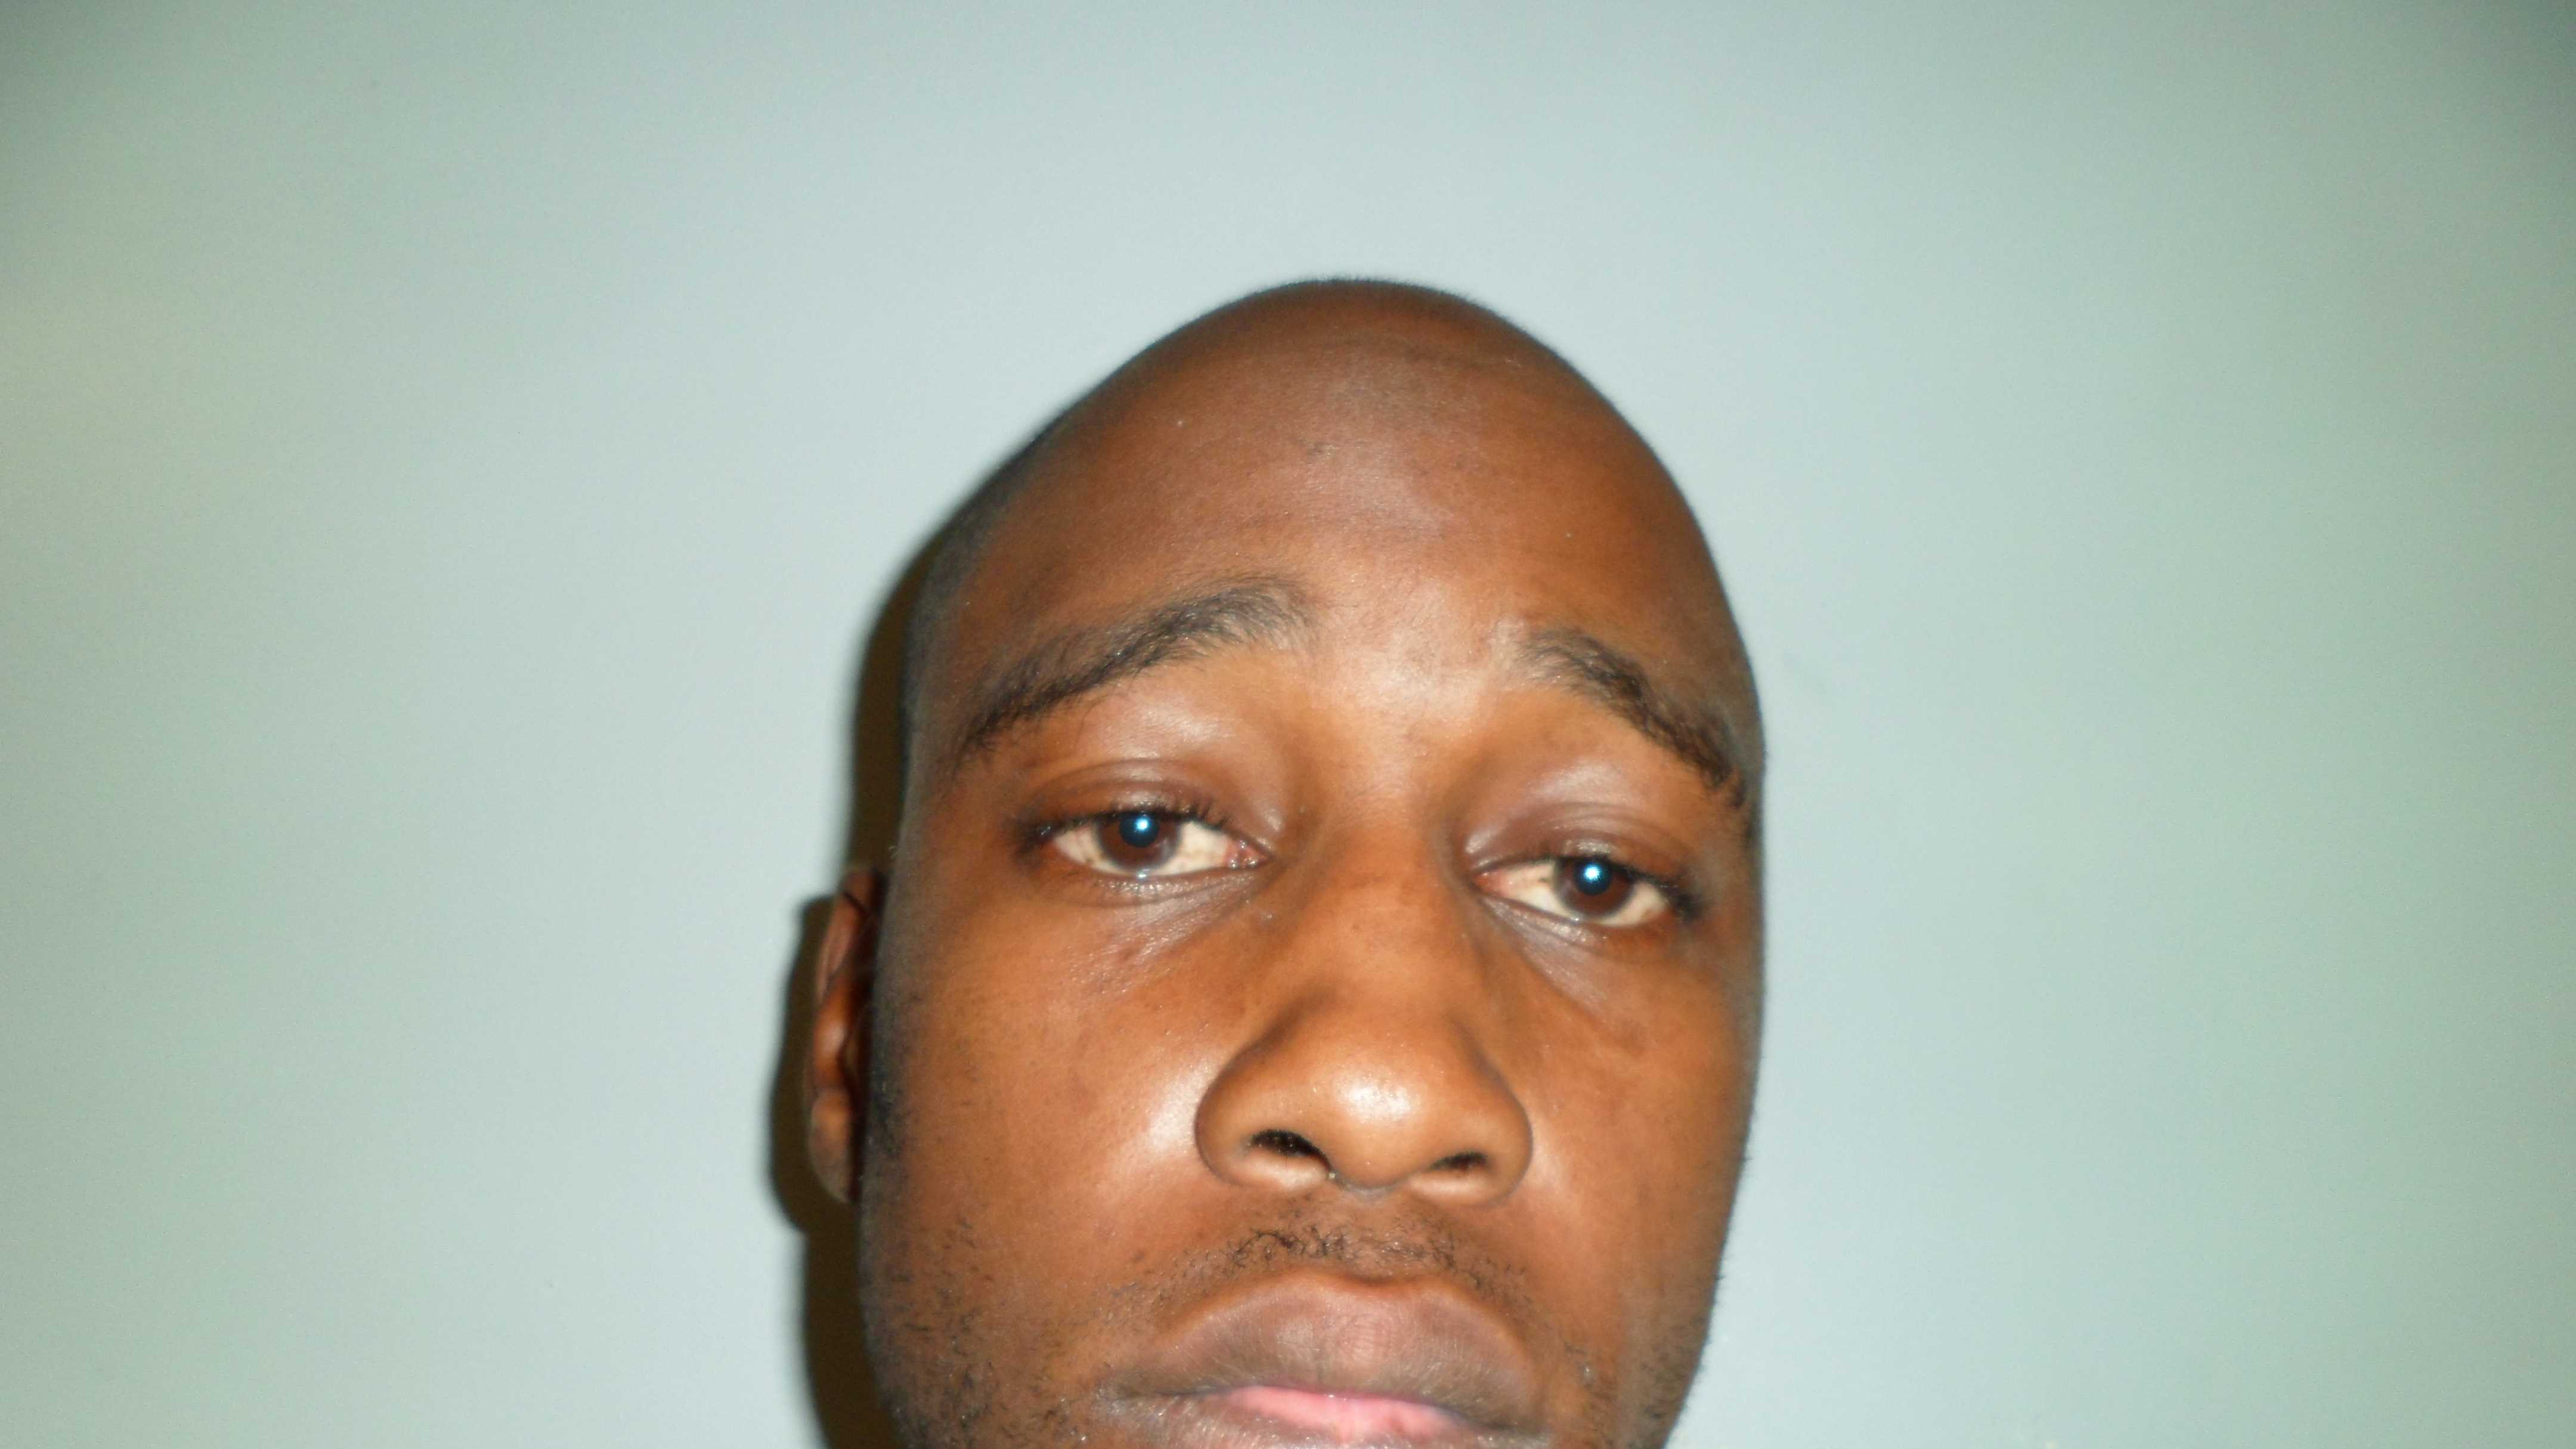 Eric Alton Lee, 26, is charged with manslaughter, Yazoo City police say.